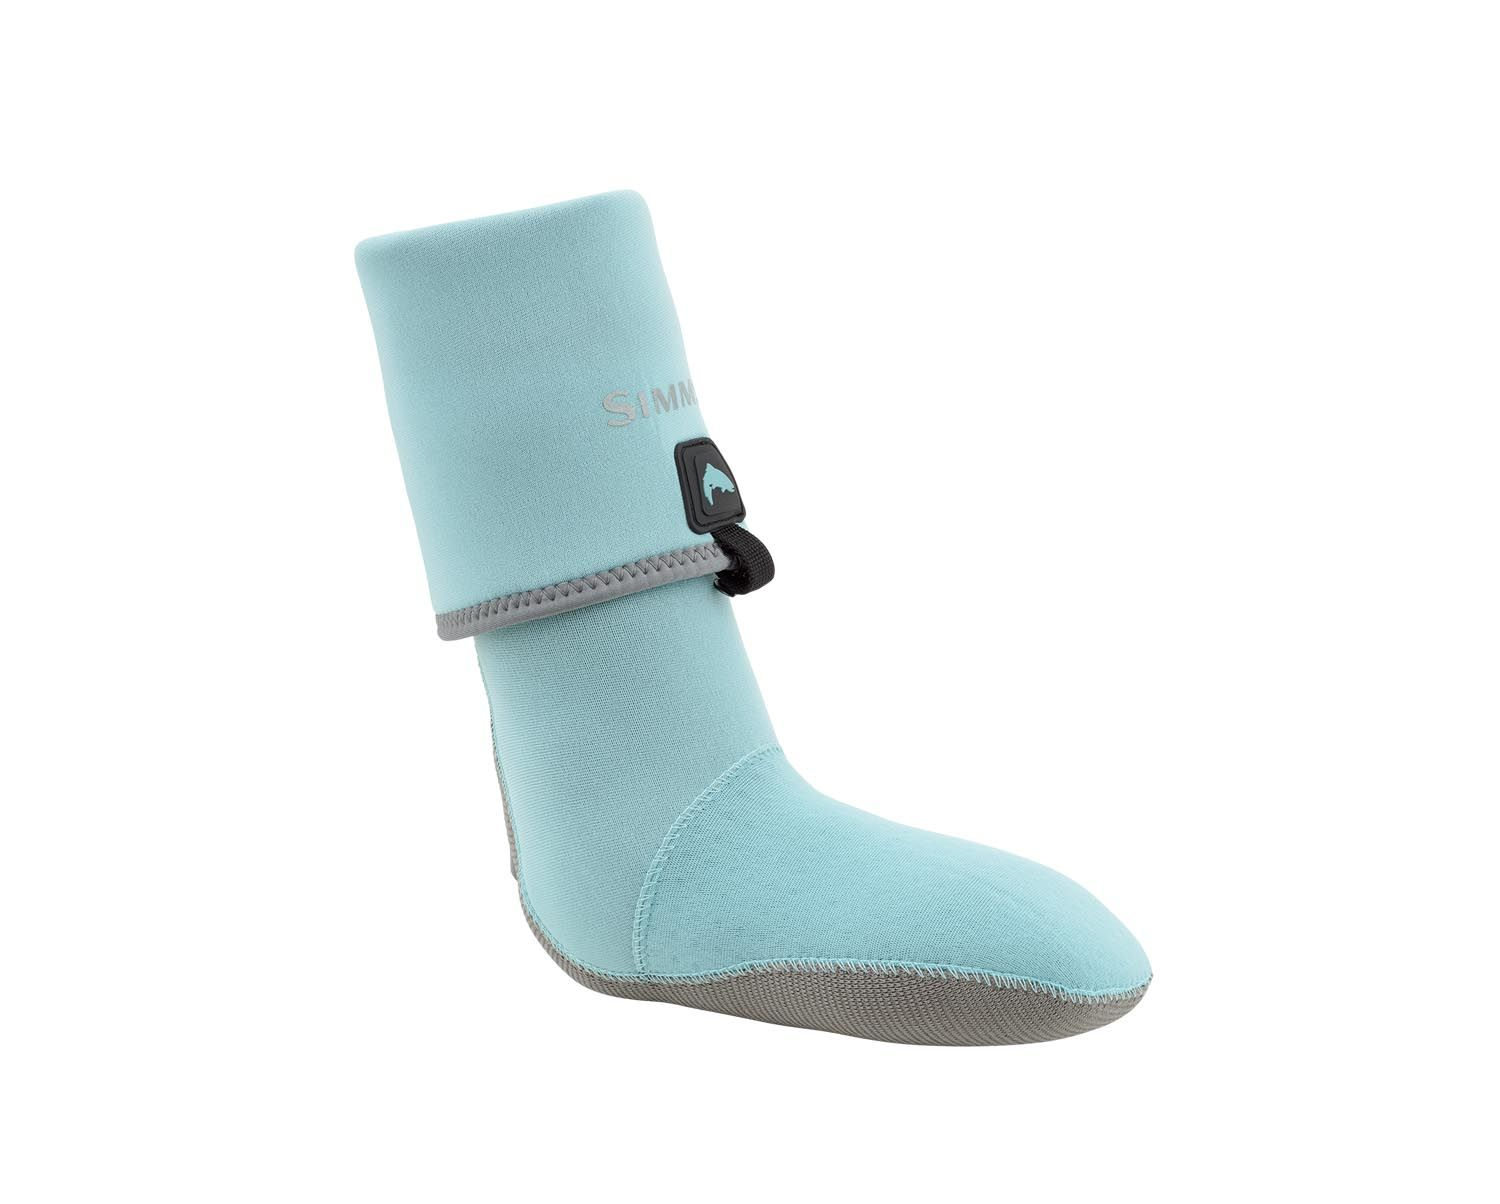 Simms Women's Guide Guard Socks